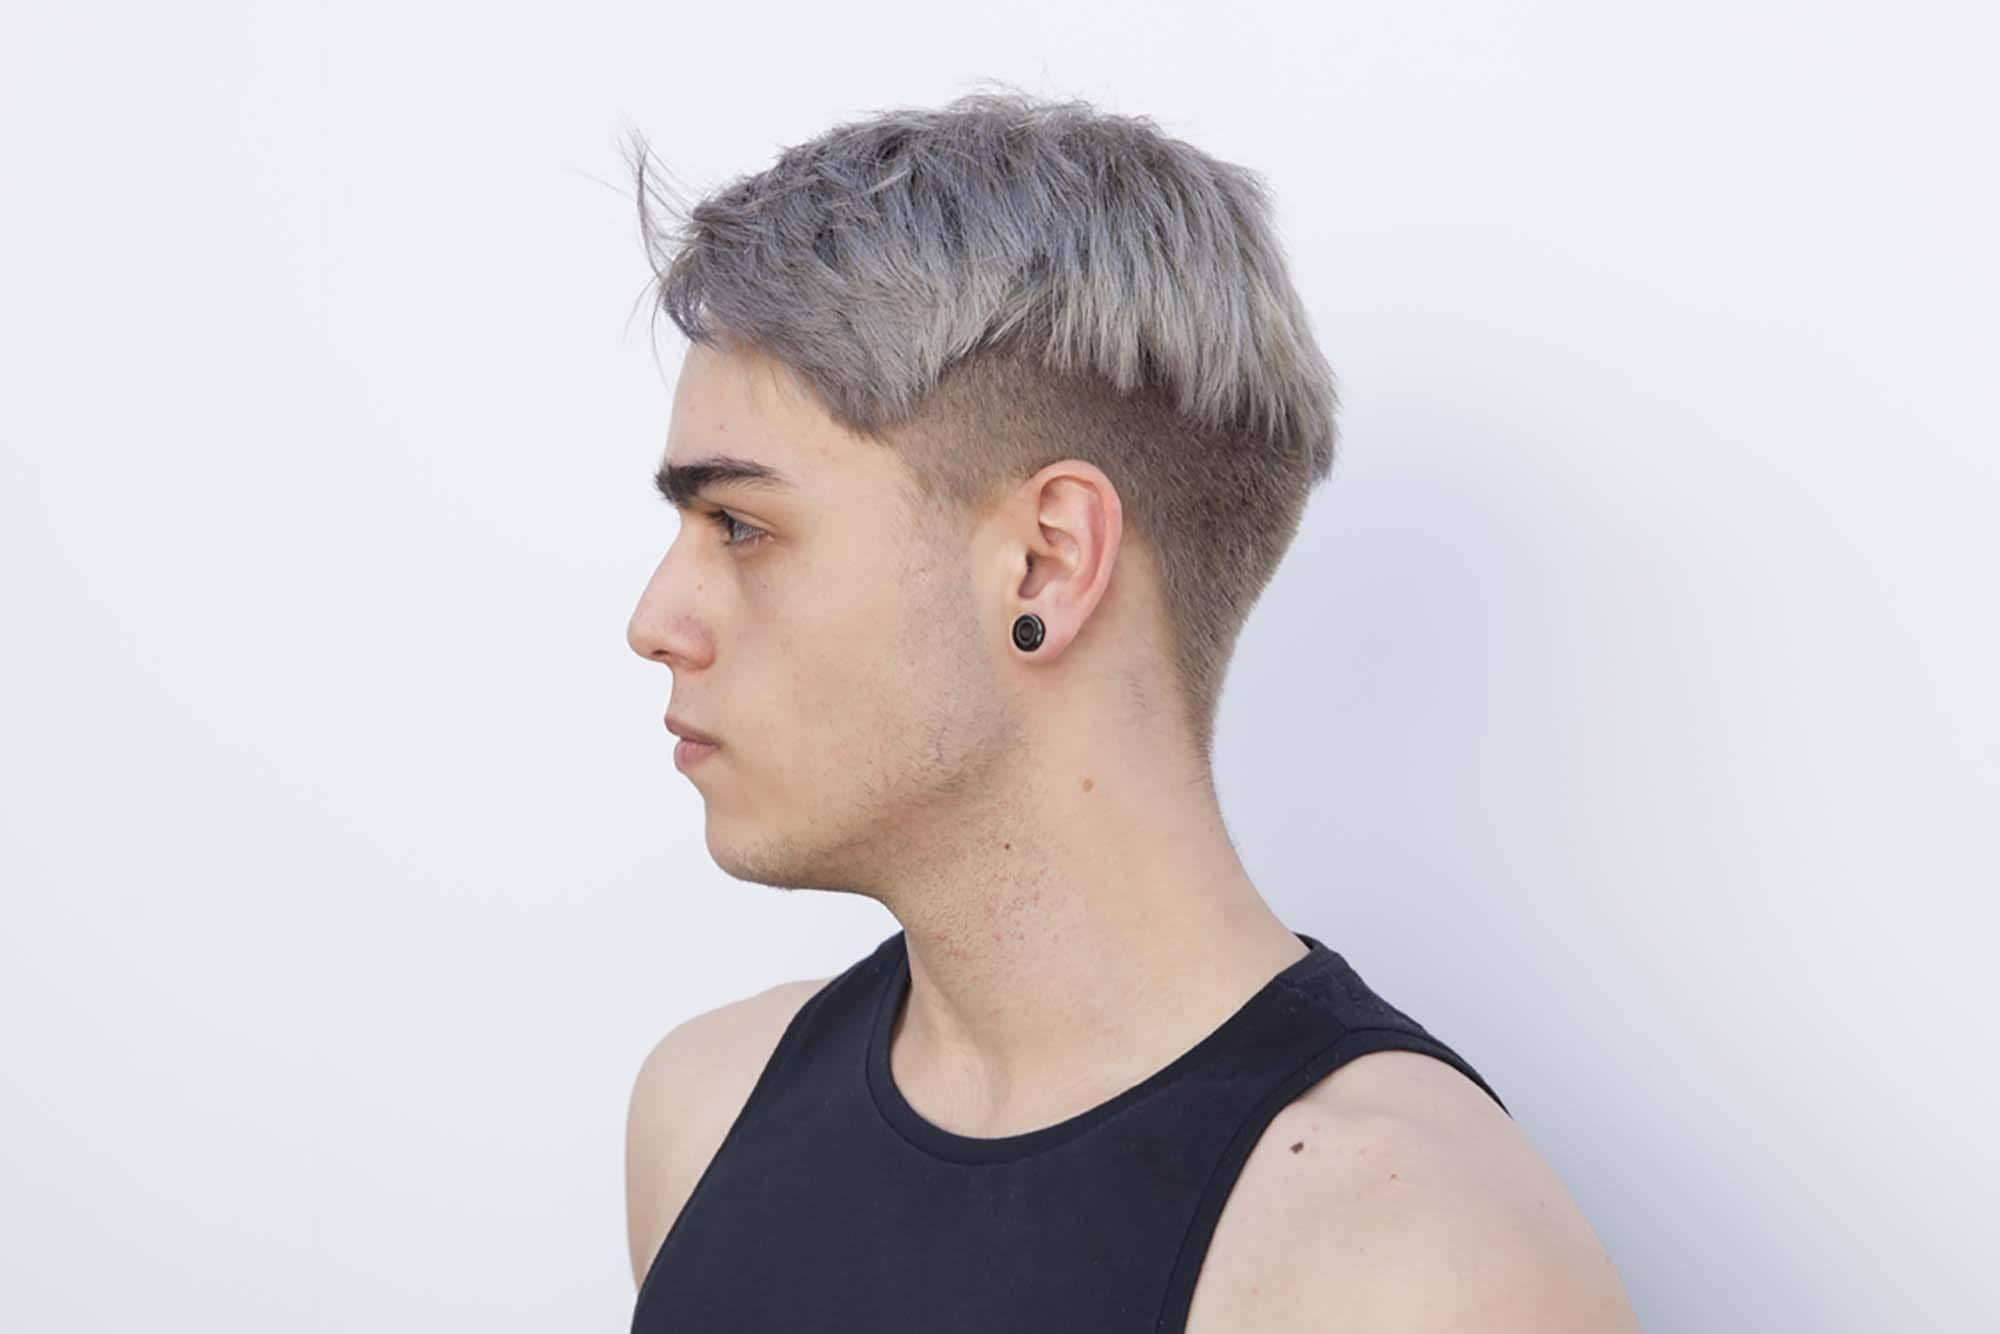 New Haircut Trends For Men 7 Sexy And Rugged Haircuts To Try